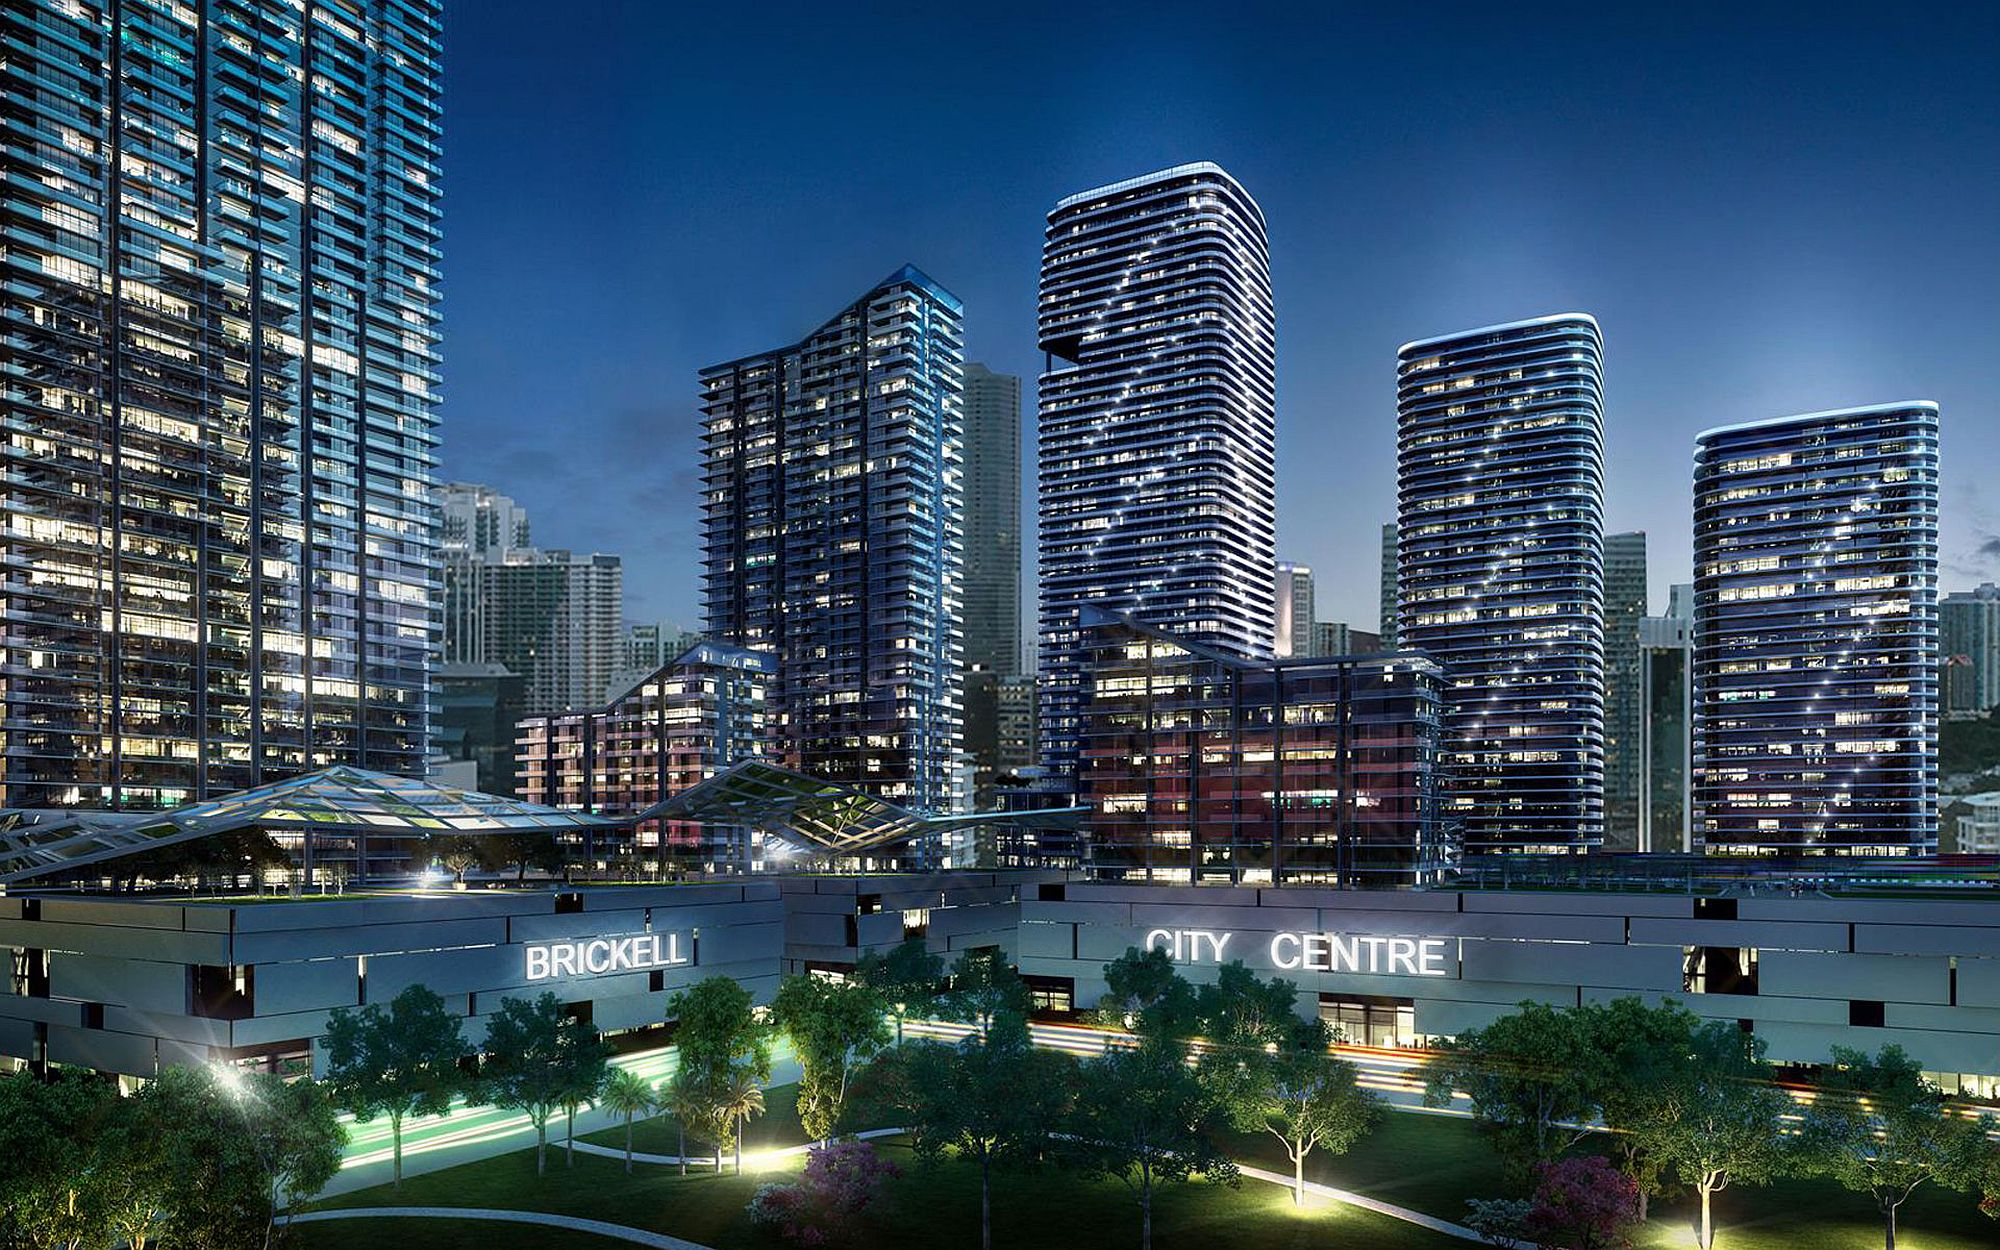 Brickell Heights provides a luxurious gateway into Miami's Downtown and its glitzy nightlife